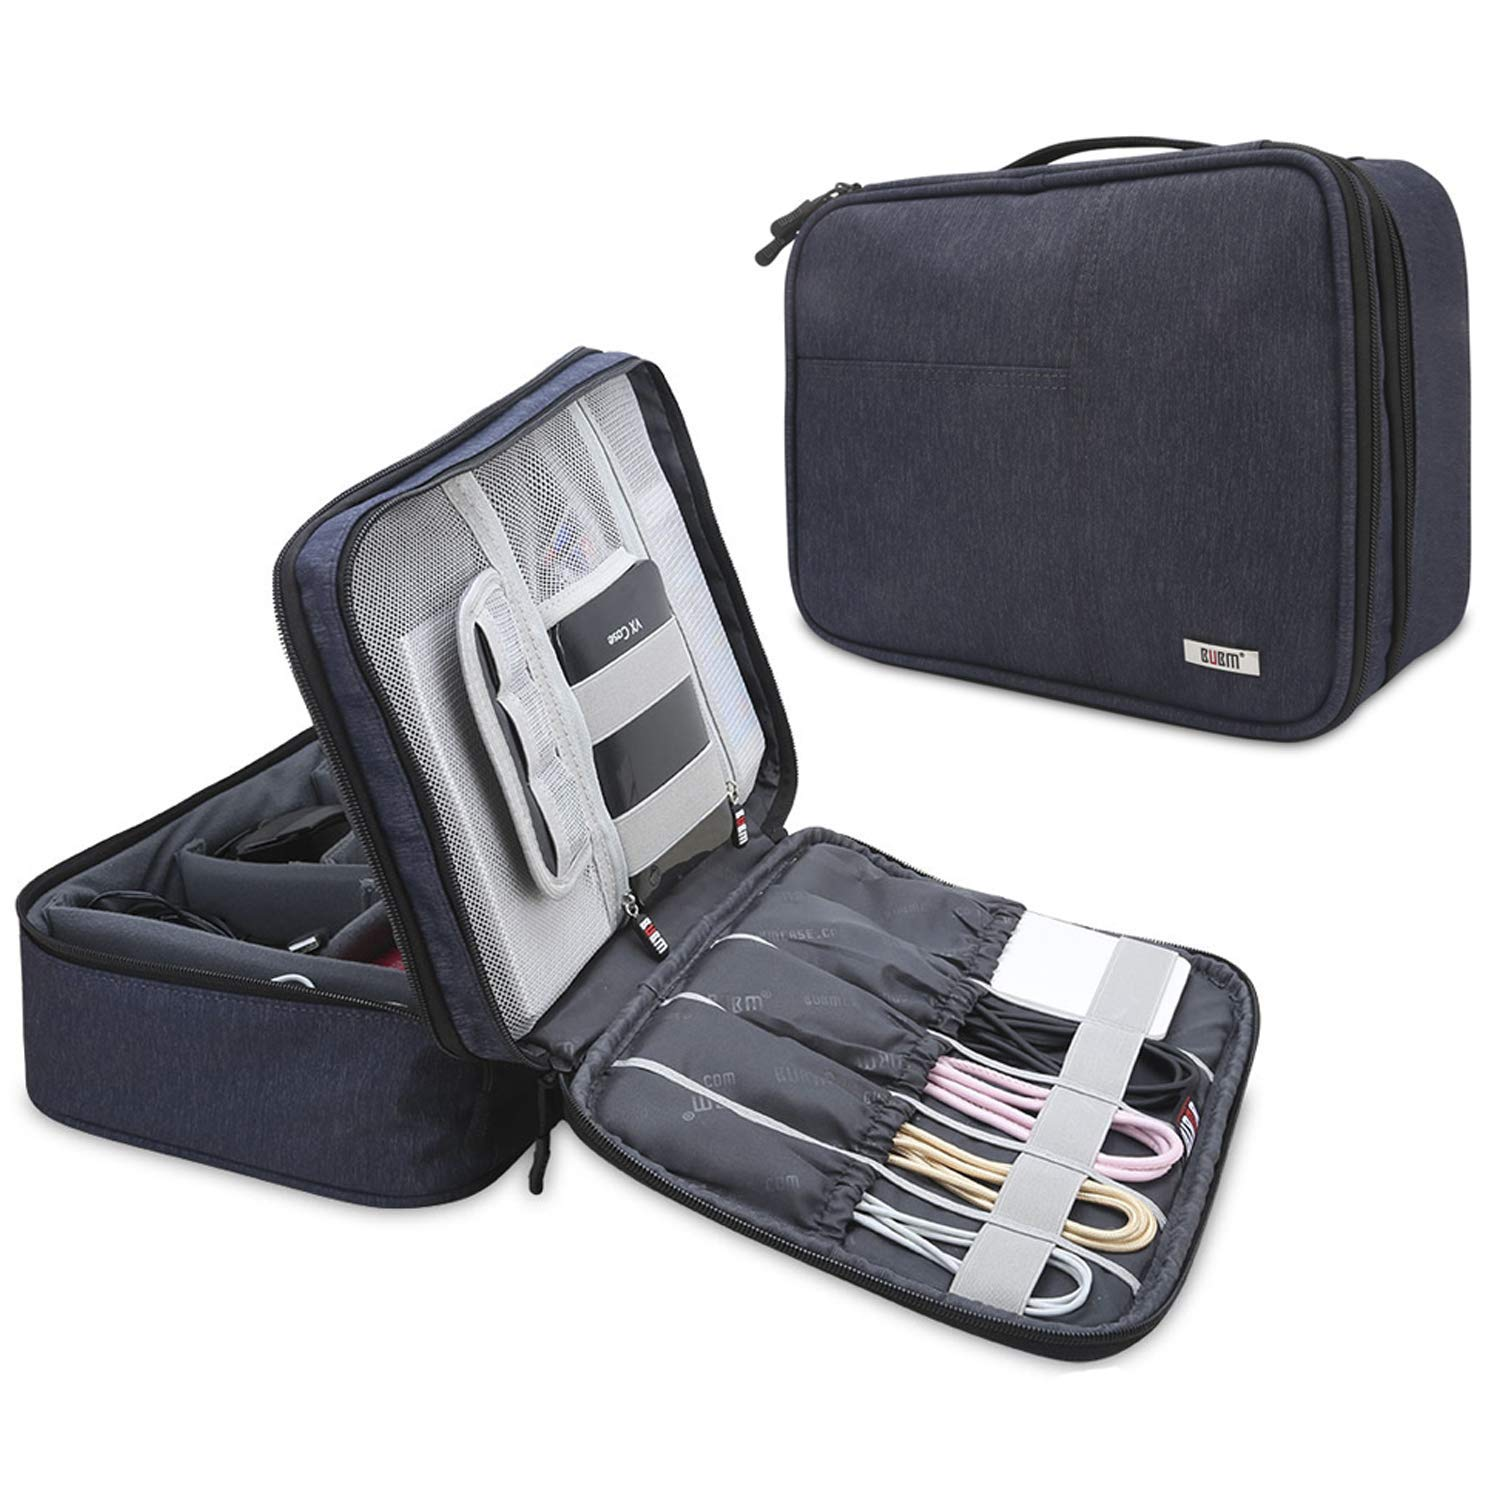 BUBM Electronic Organizer, Double Layer Electronic Bag for Cables, Plugs, External Hard Drive and Other Electronic Accessories (Large/Dark Blue)